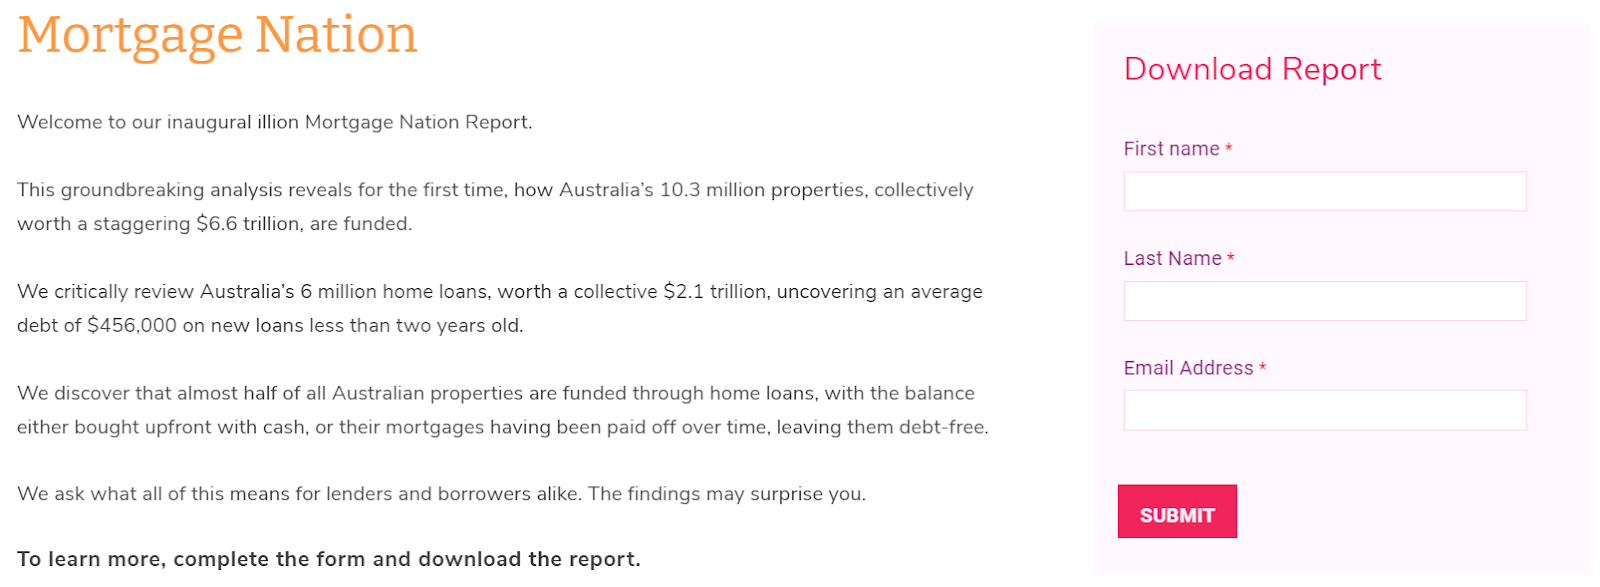 optin offering Mortgage Nation report download